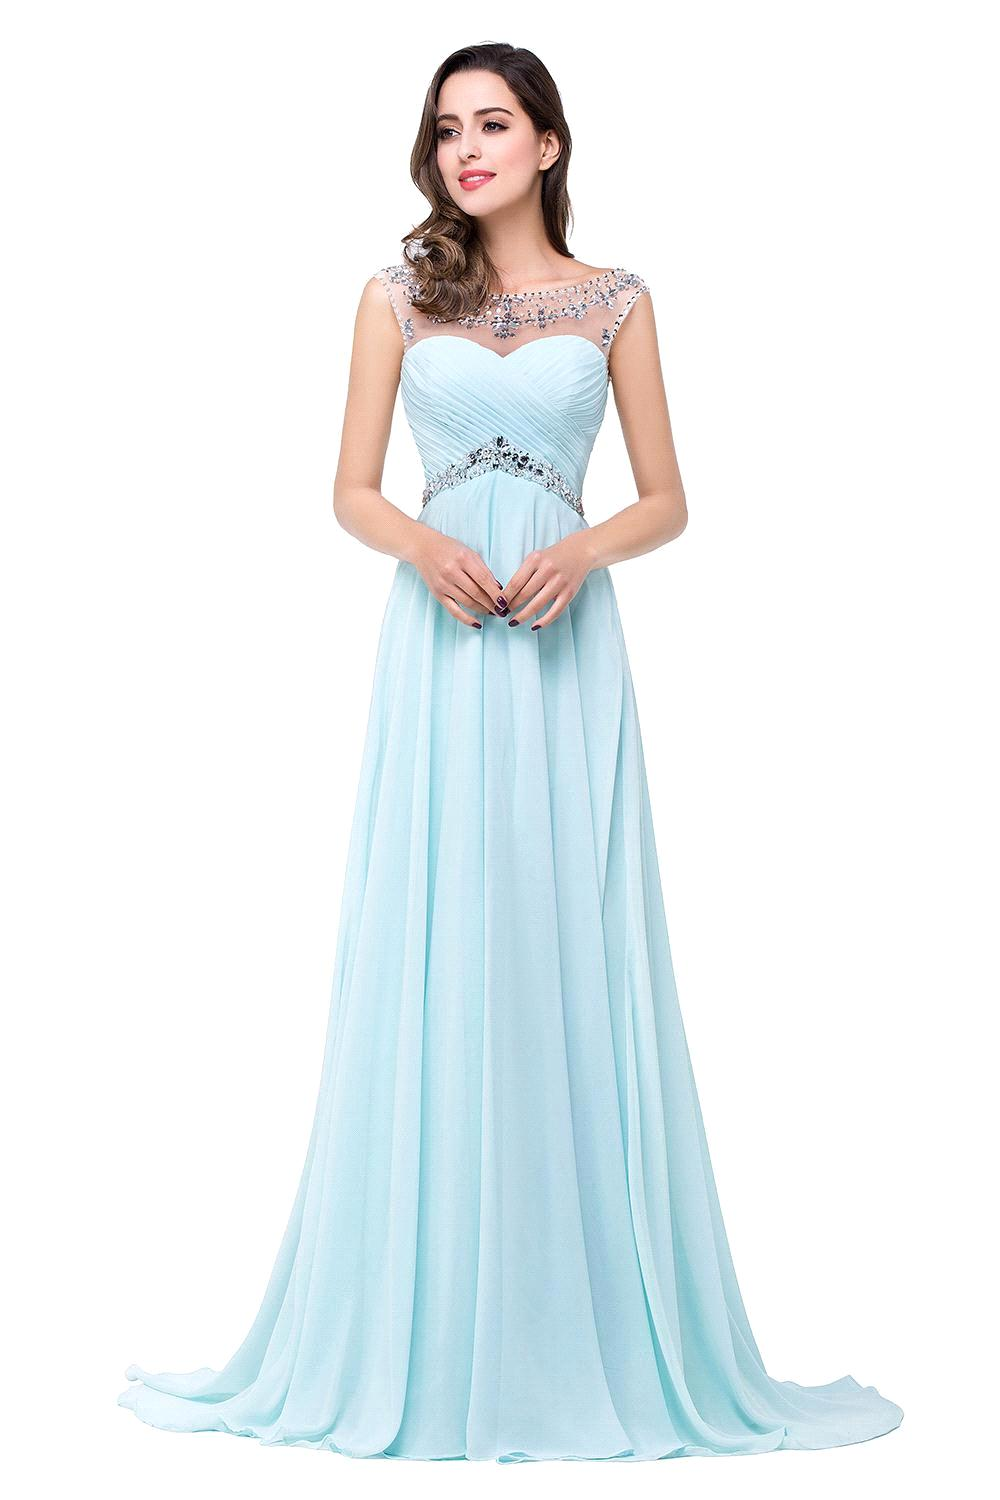 Images of Long Formal Dresses Under 100 - Reikian